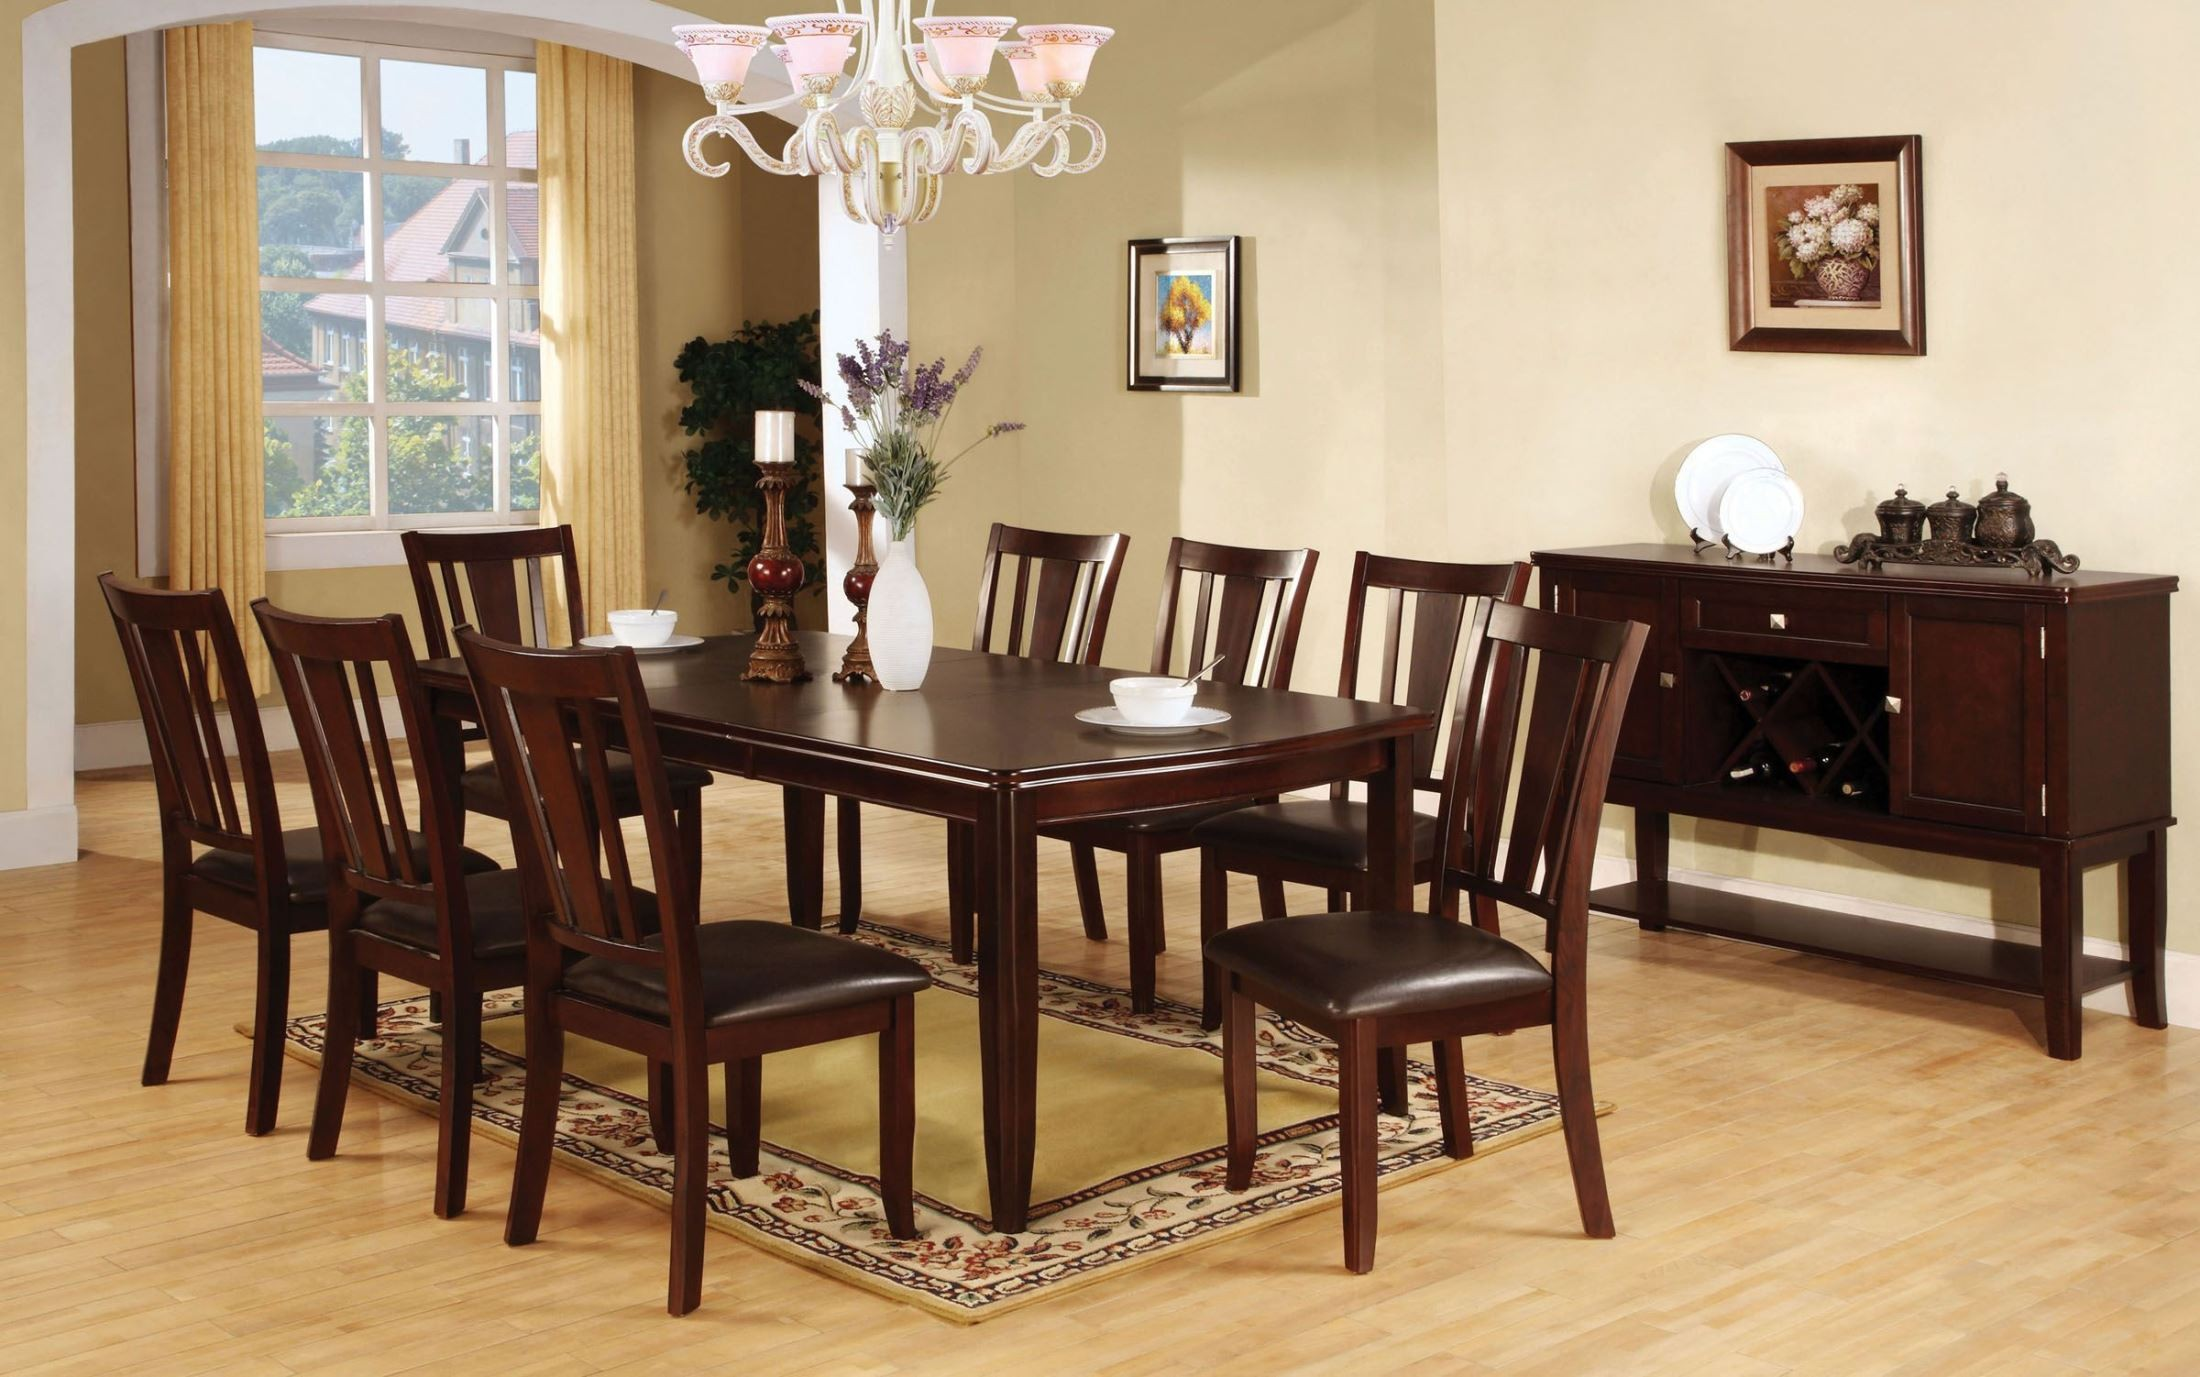 Edgewood I Espresso Rectangular Extendable Leg Dining Room Set CM3336T Furn